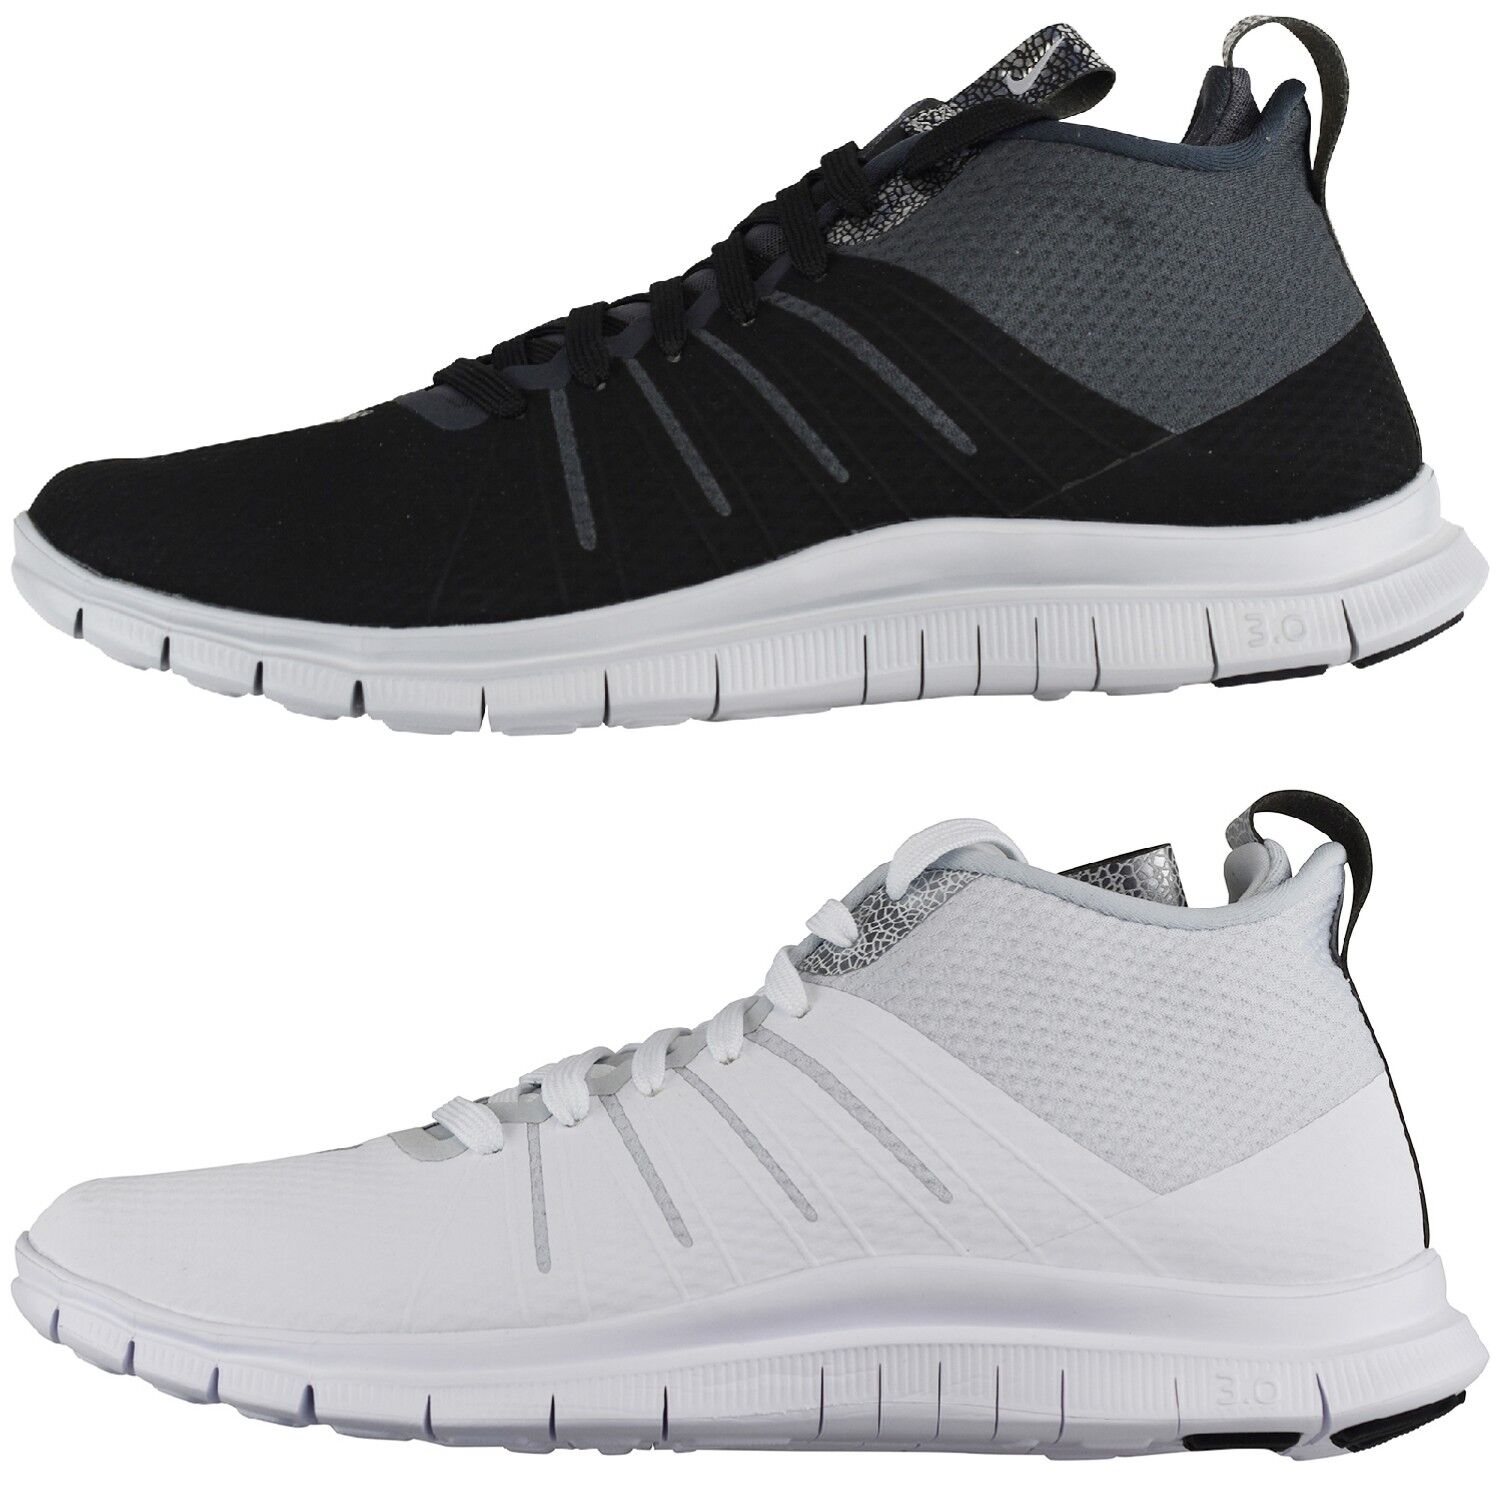 NIKE FREE HYPERVENOM 2 FS Running Shoes Trainers Trainers Textile New shoes for men and women, limited time discount